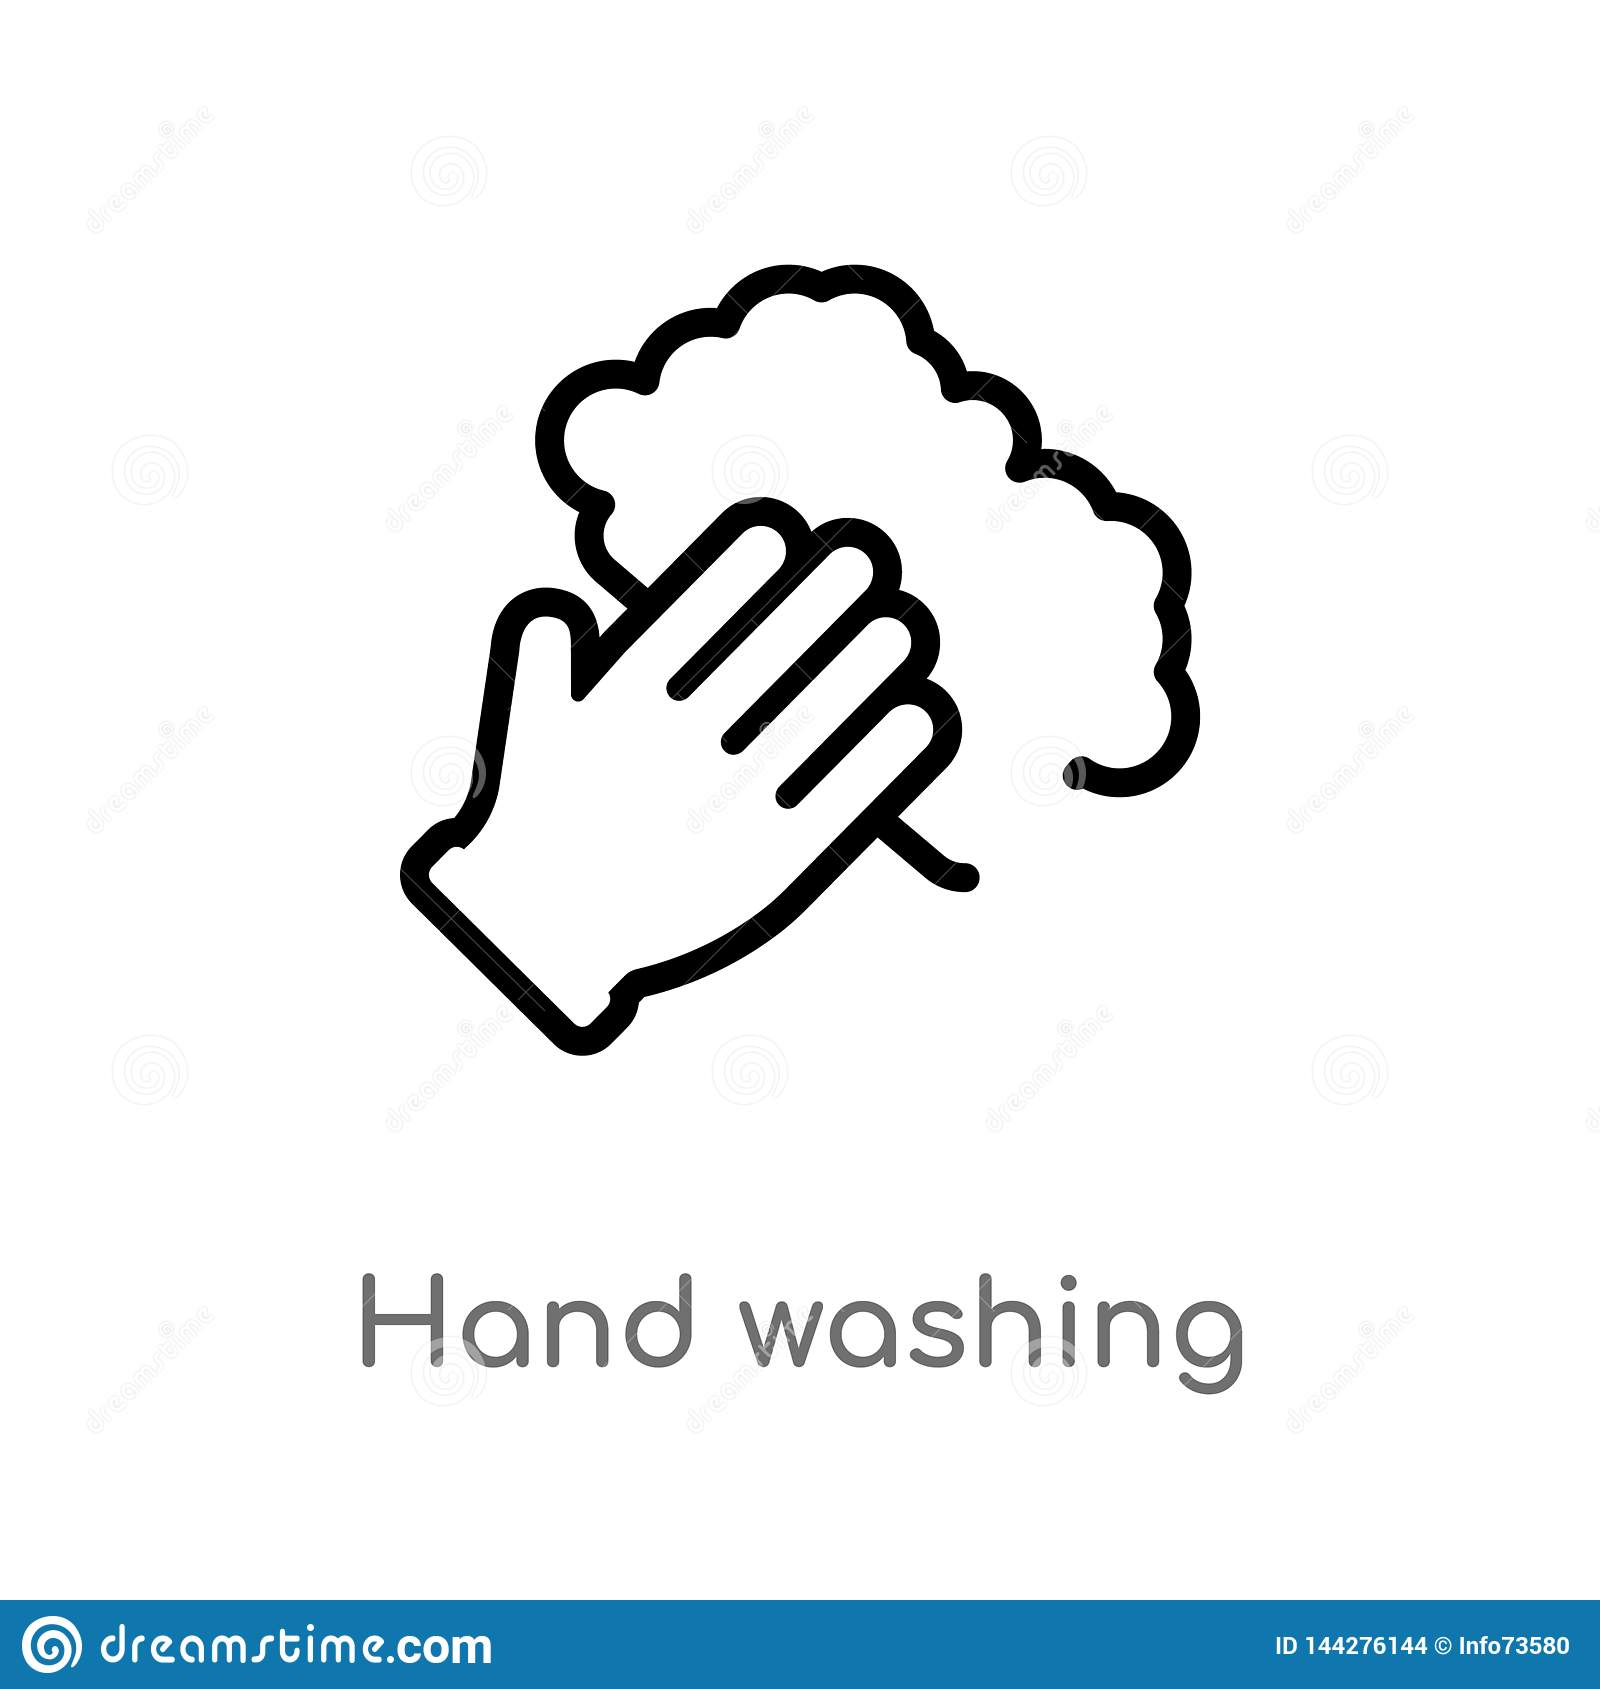 Outline Hand Washing Vector Icon Isolated Black Simple